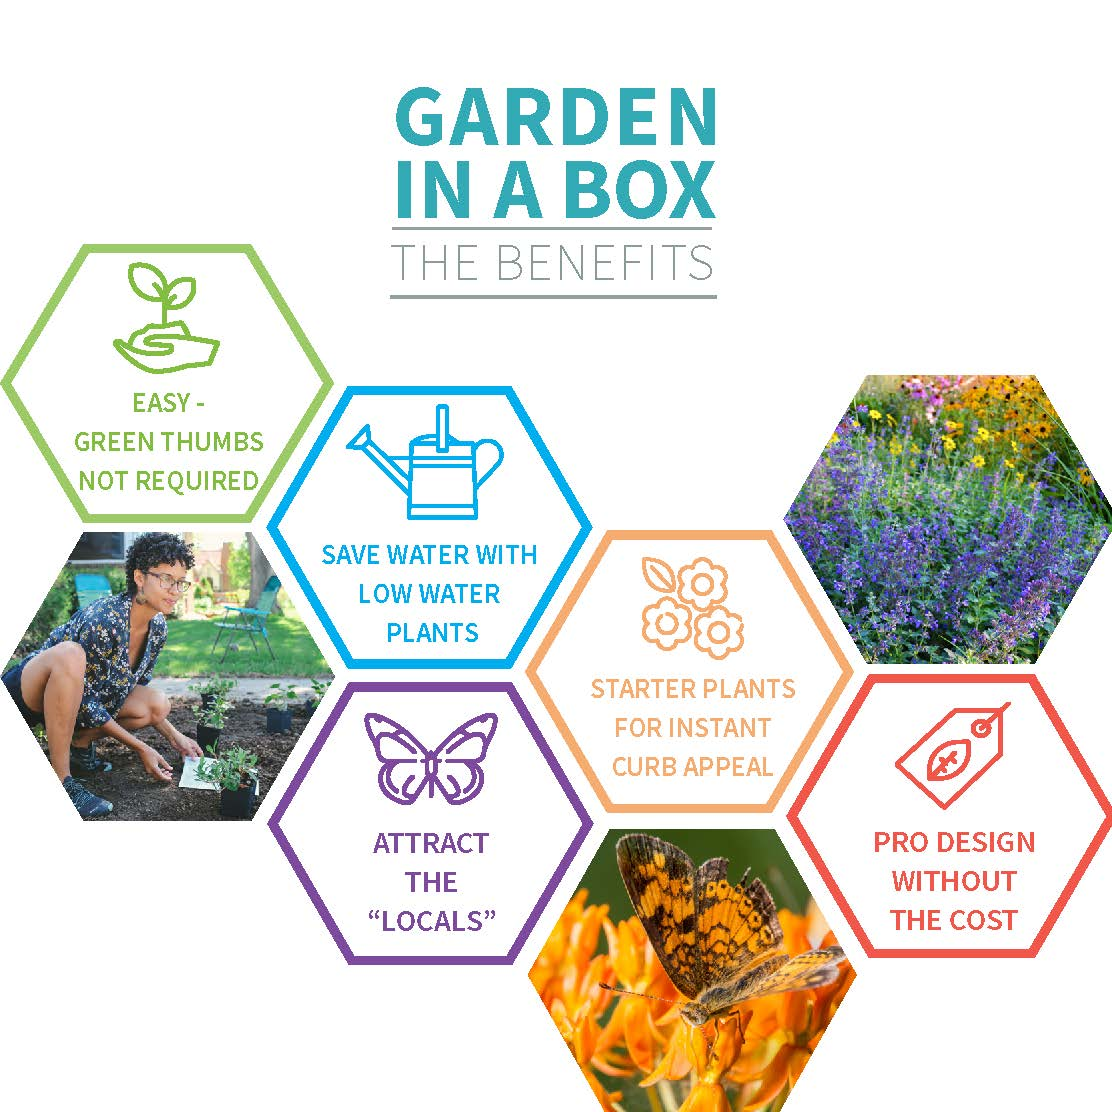 hexagon tiles, with pictures of gardens and text benefits of garden in a box